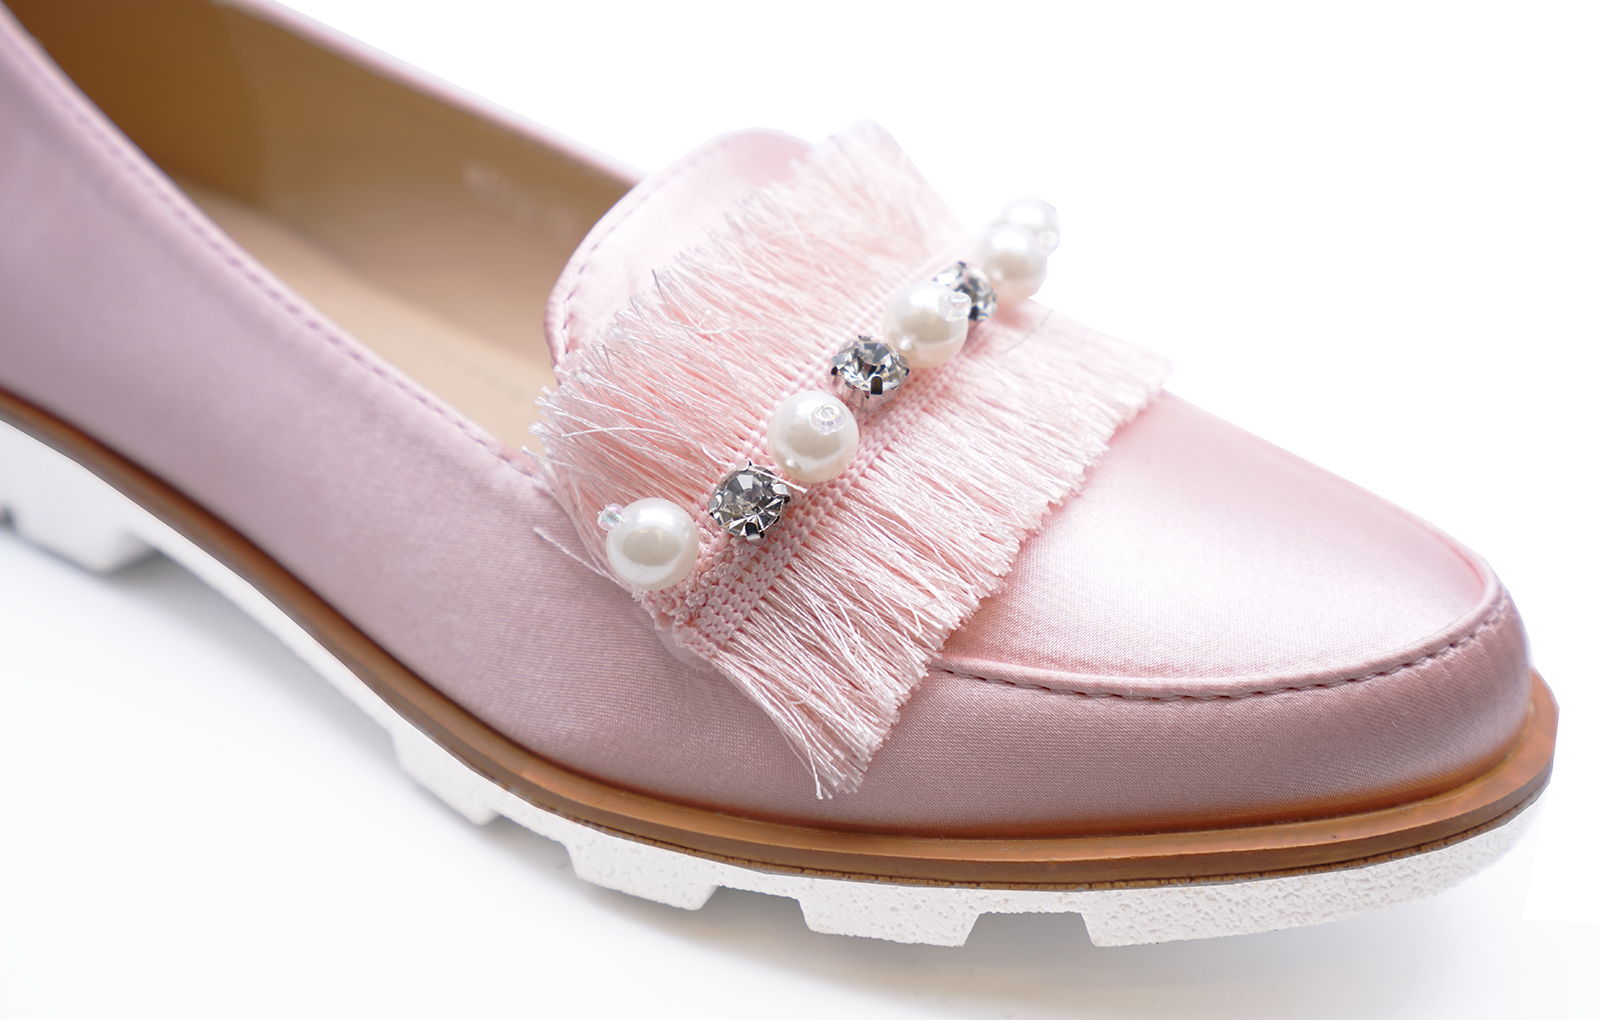 LADIES PINK SLIP-ON SATIN LOAFERS SMART CASUAL FLAT COMFY PUMPS SHOES SIZES 3-8